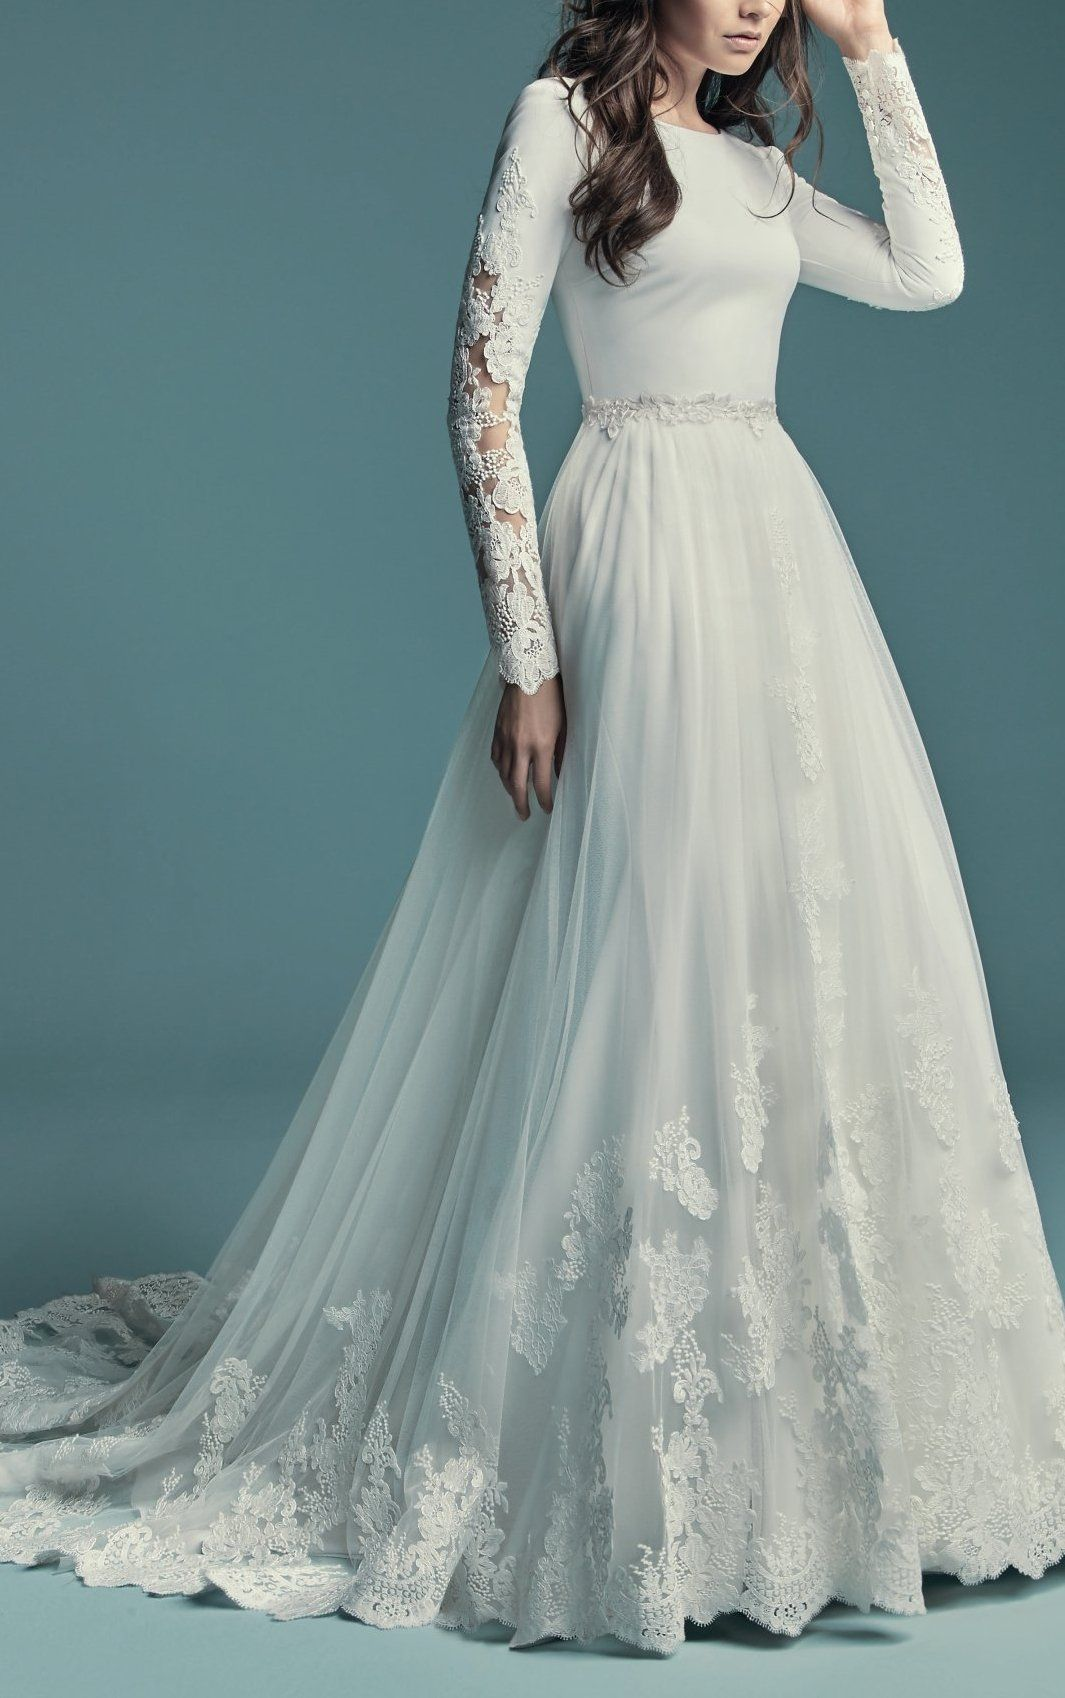 Olyssia by maggie sottero wedding dresses wedding dresses